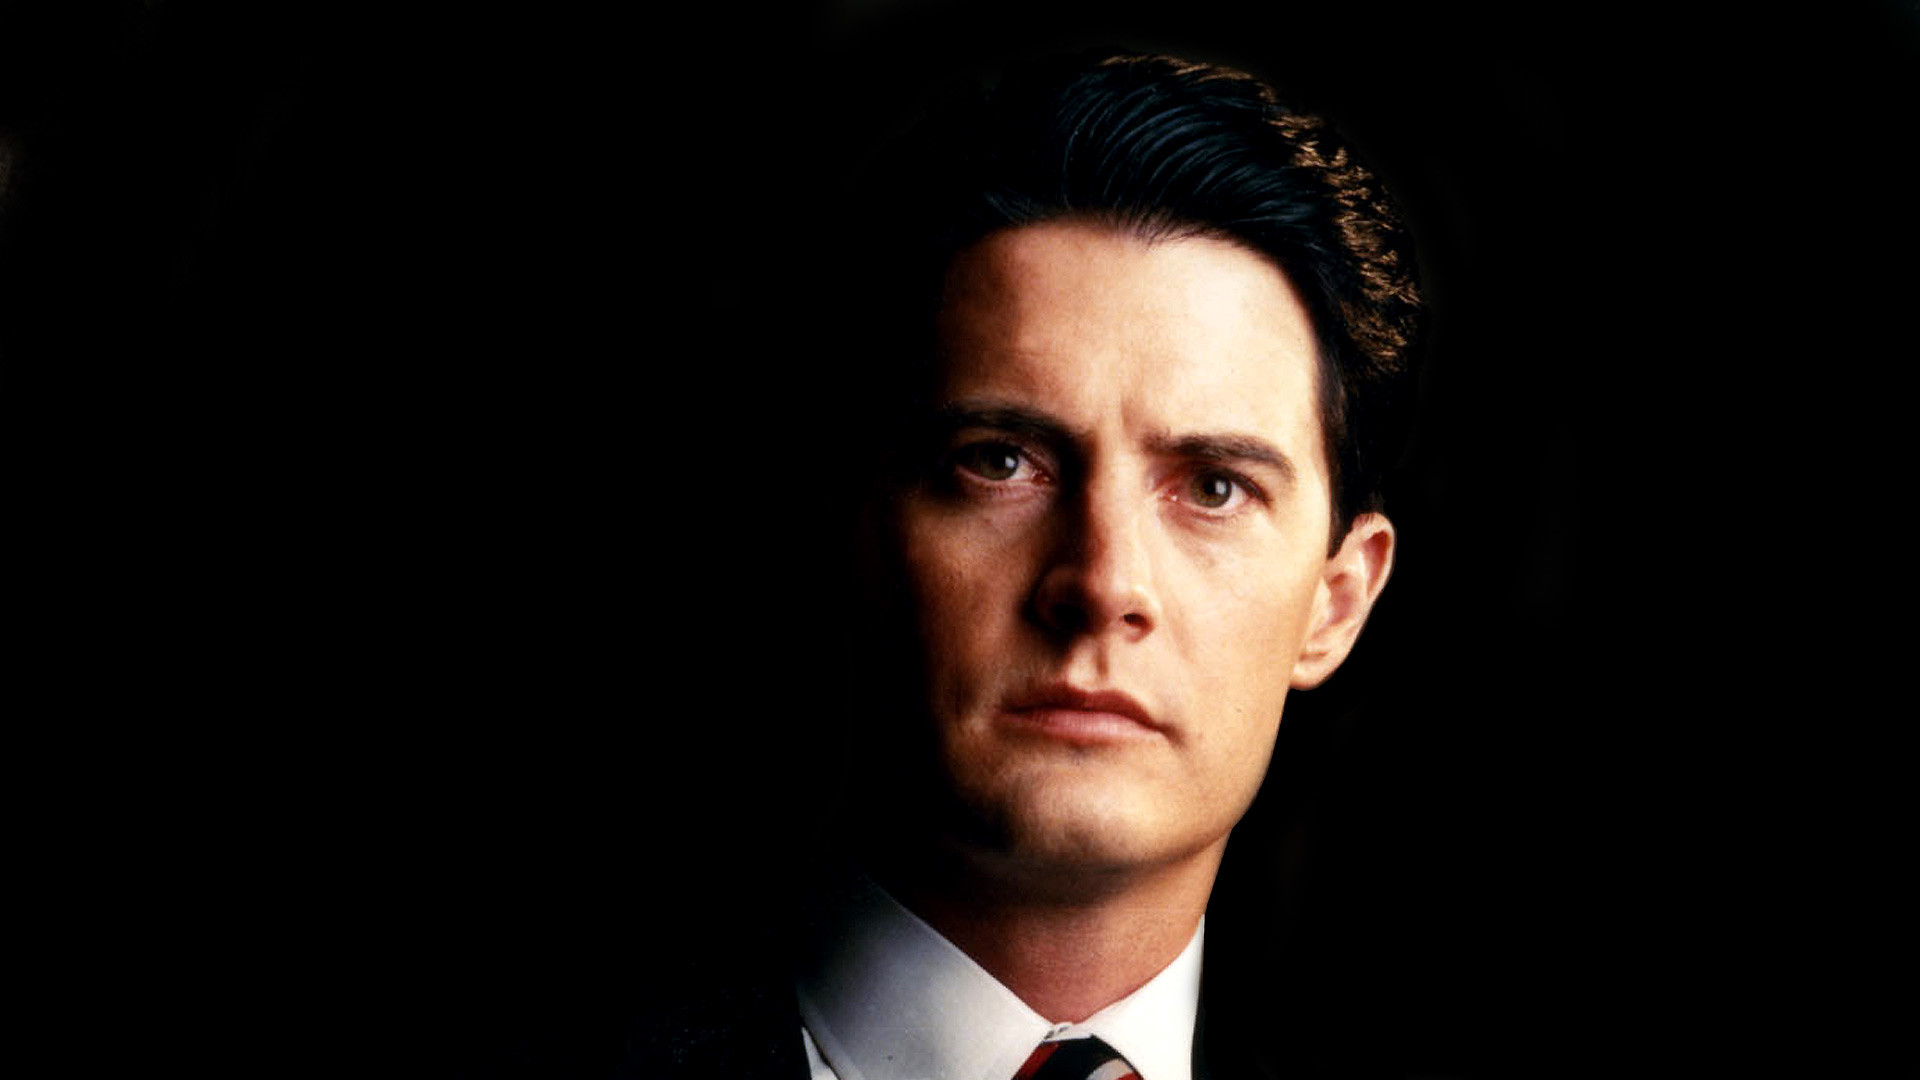 » Dale Cooper appears in a new Twin Peaks promo